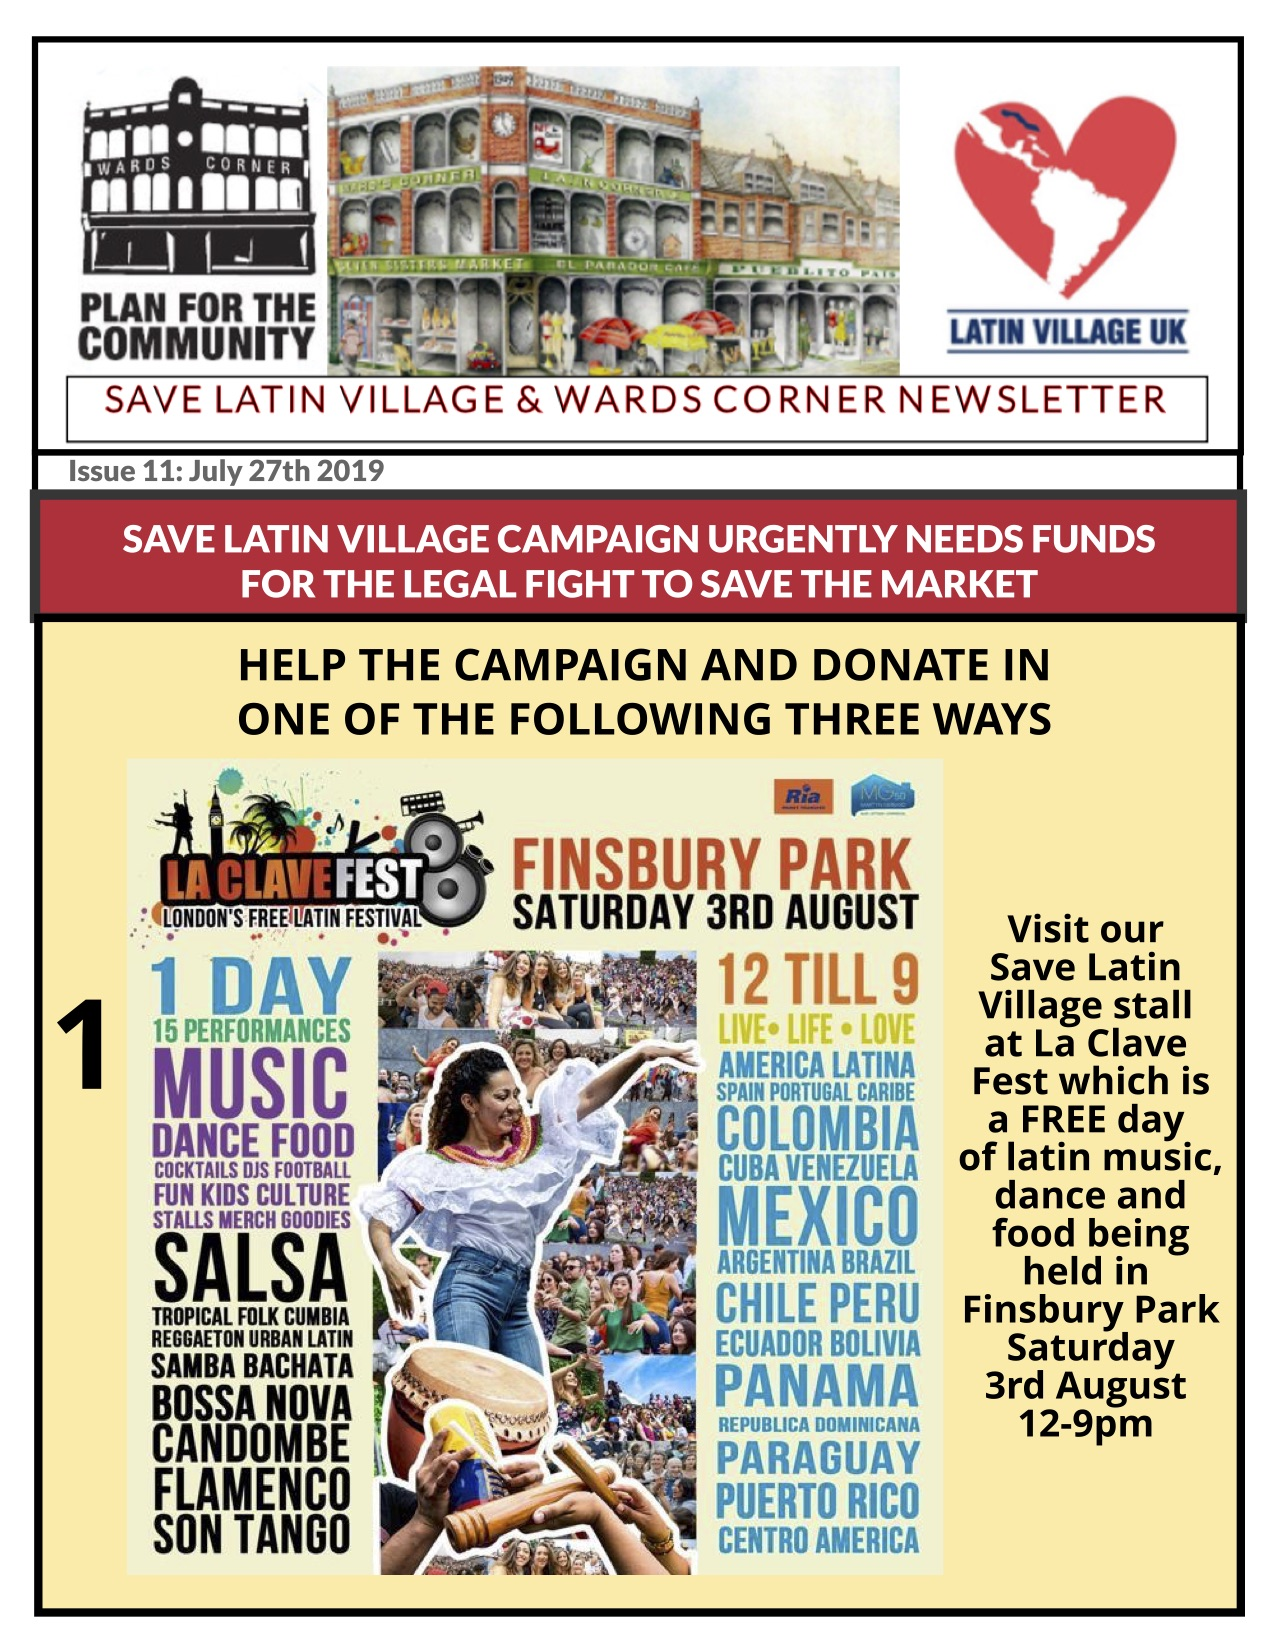 Save Latin Village at La Clave Fest in Finsbury Park 3 Aug 2019